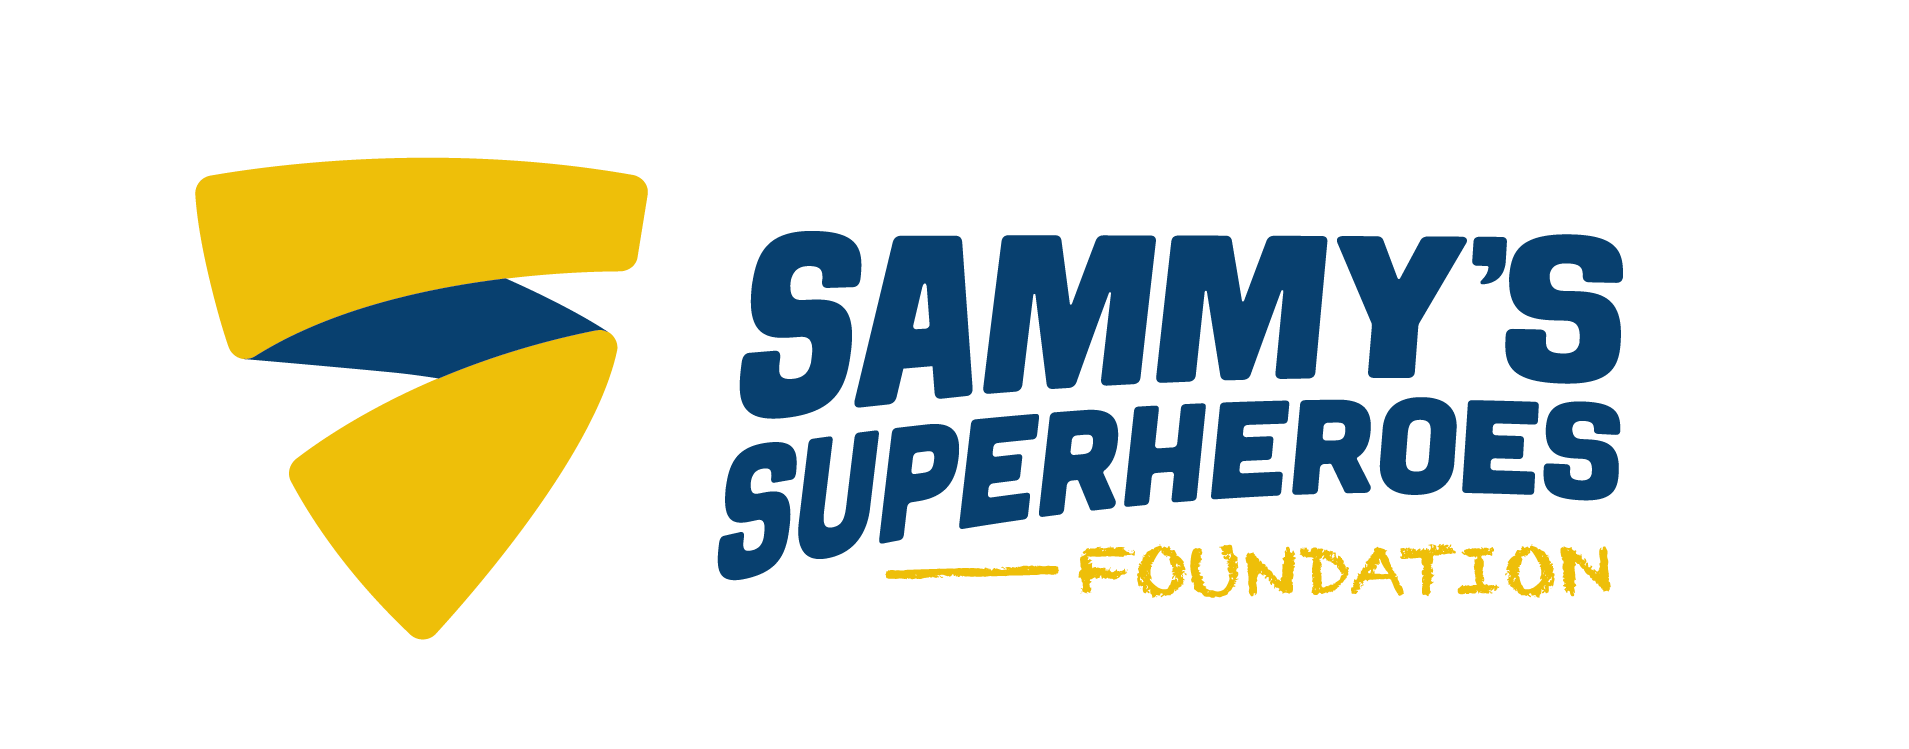 Sammy's Superheroes Foundation